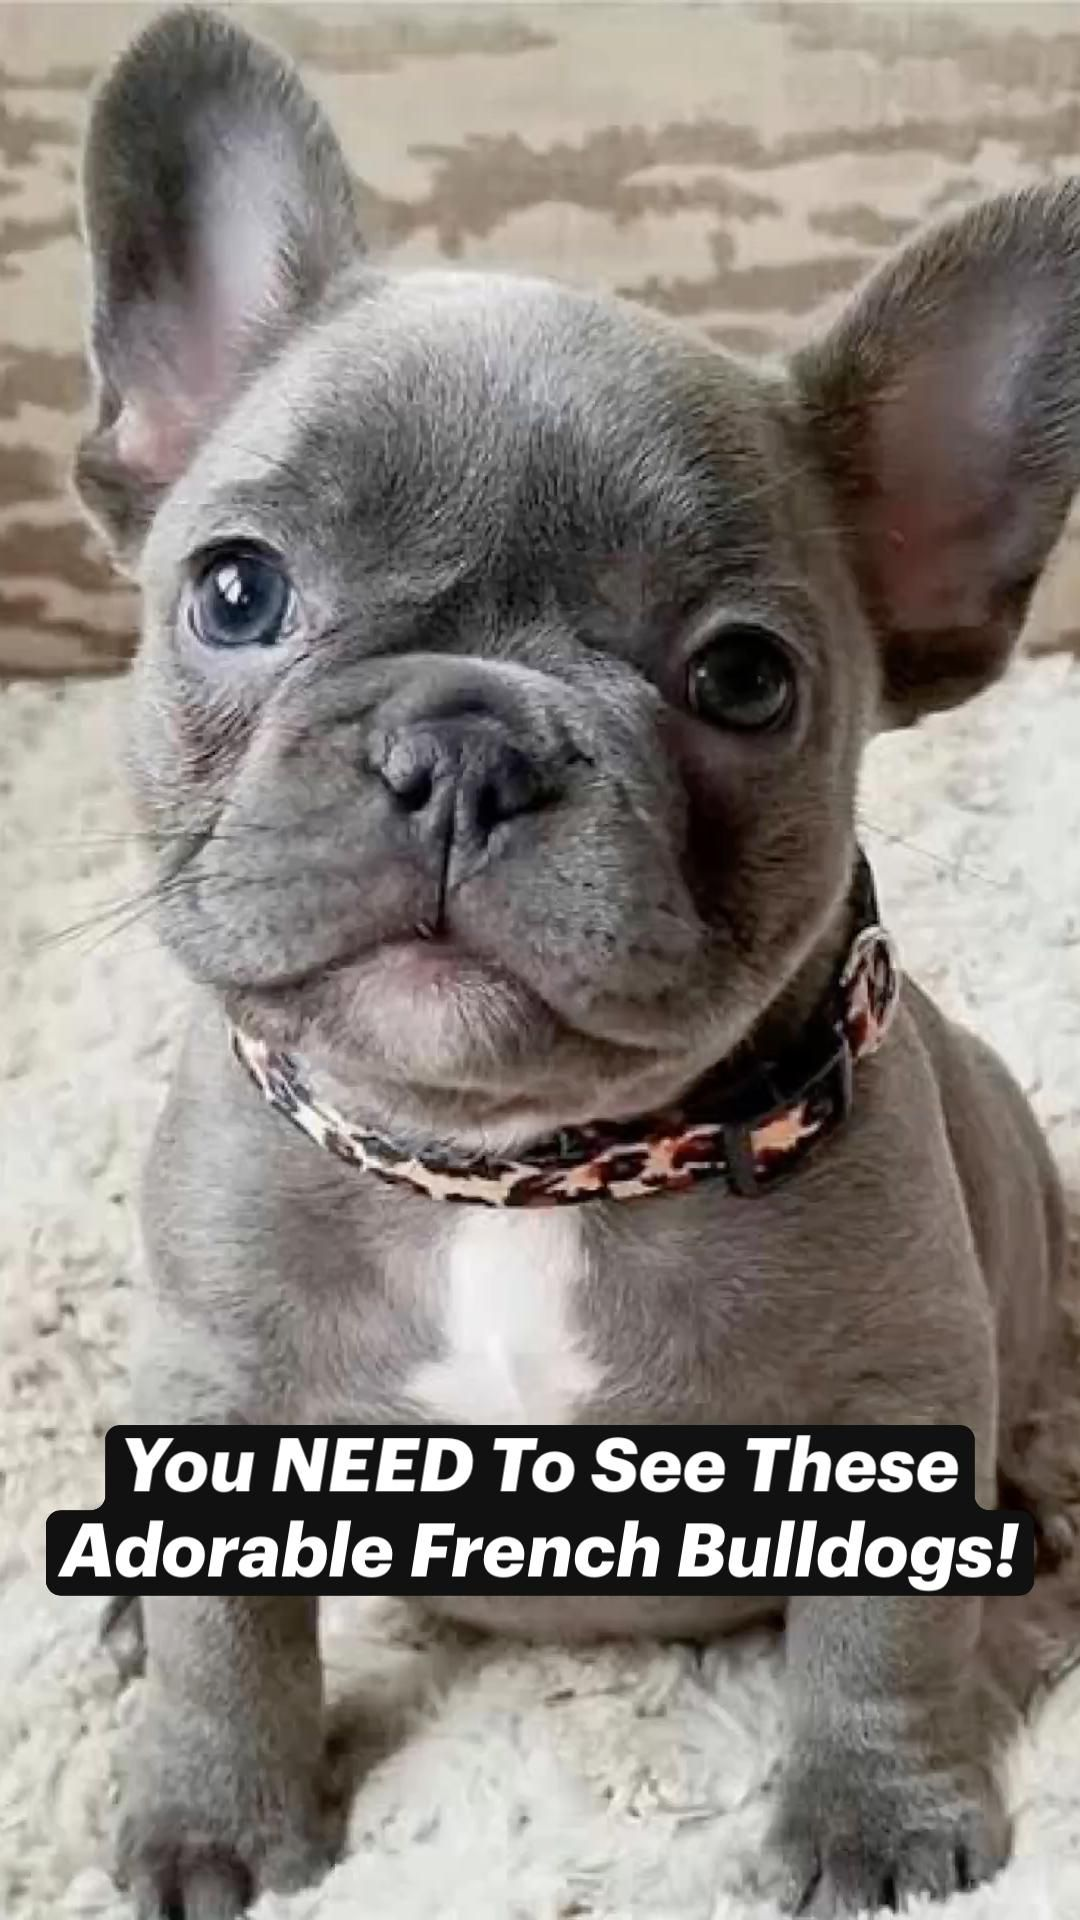 You NEED To See These Adorable French Bulldogs!